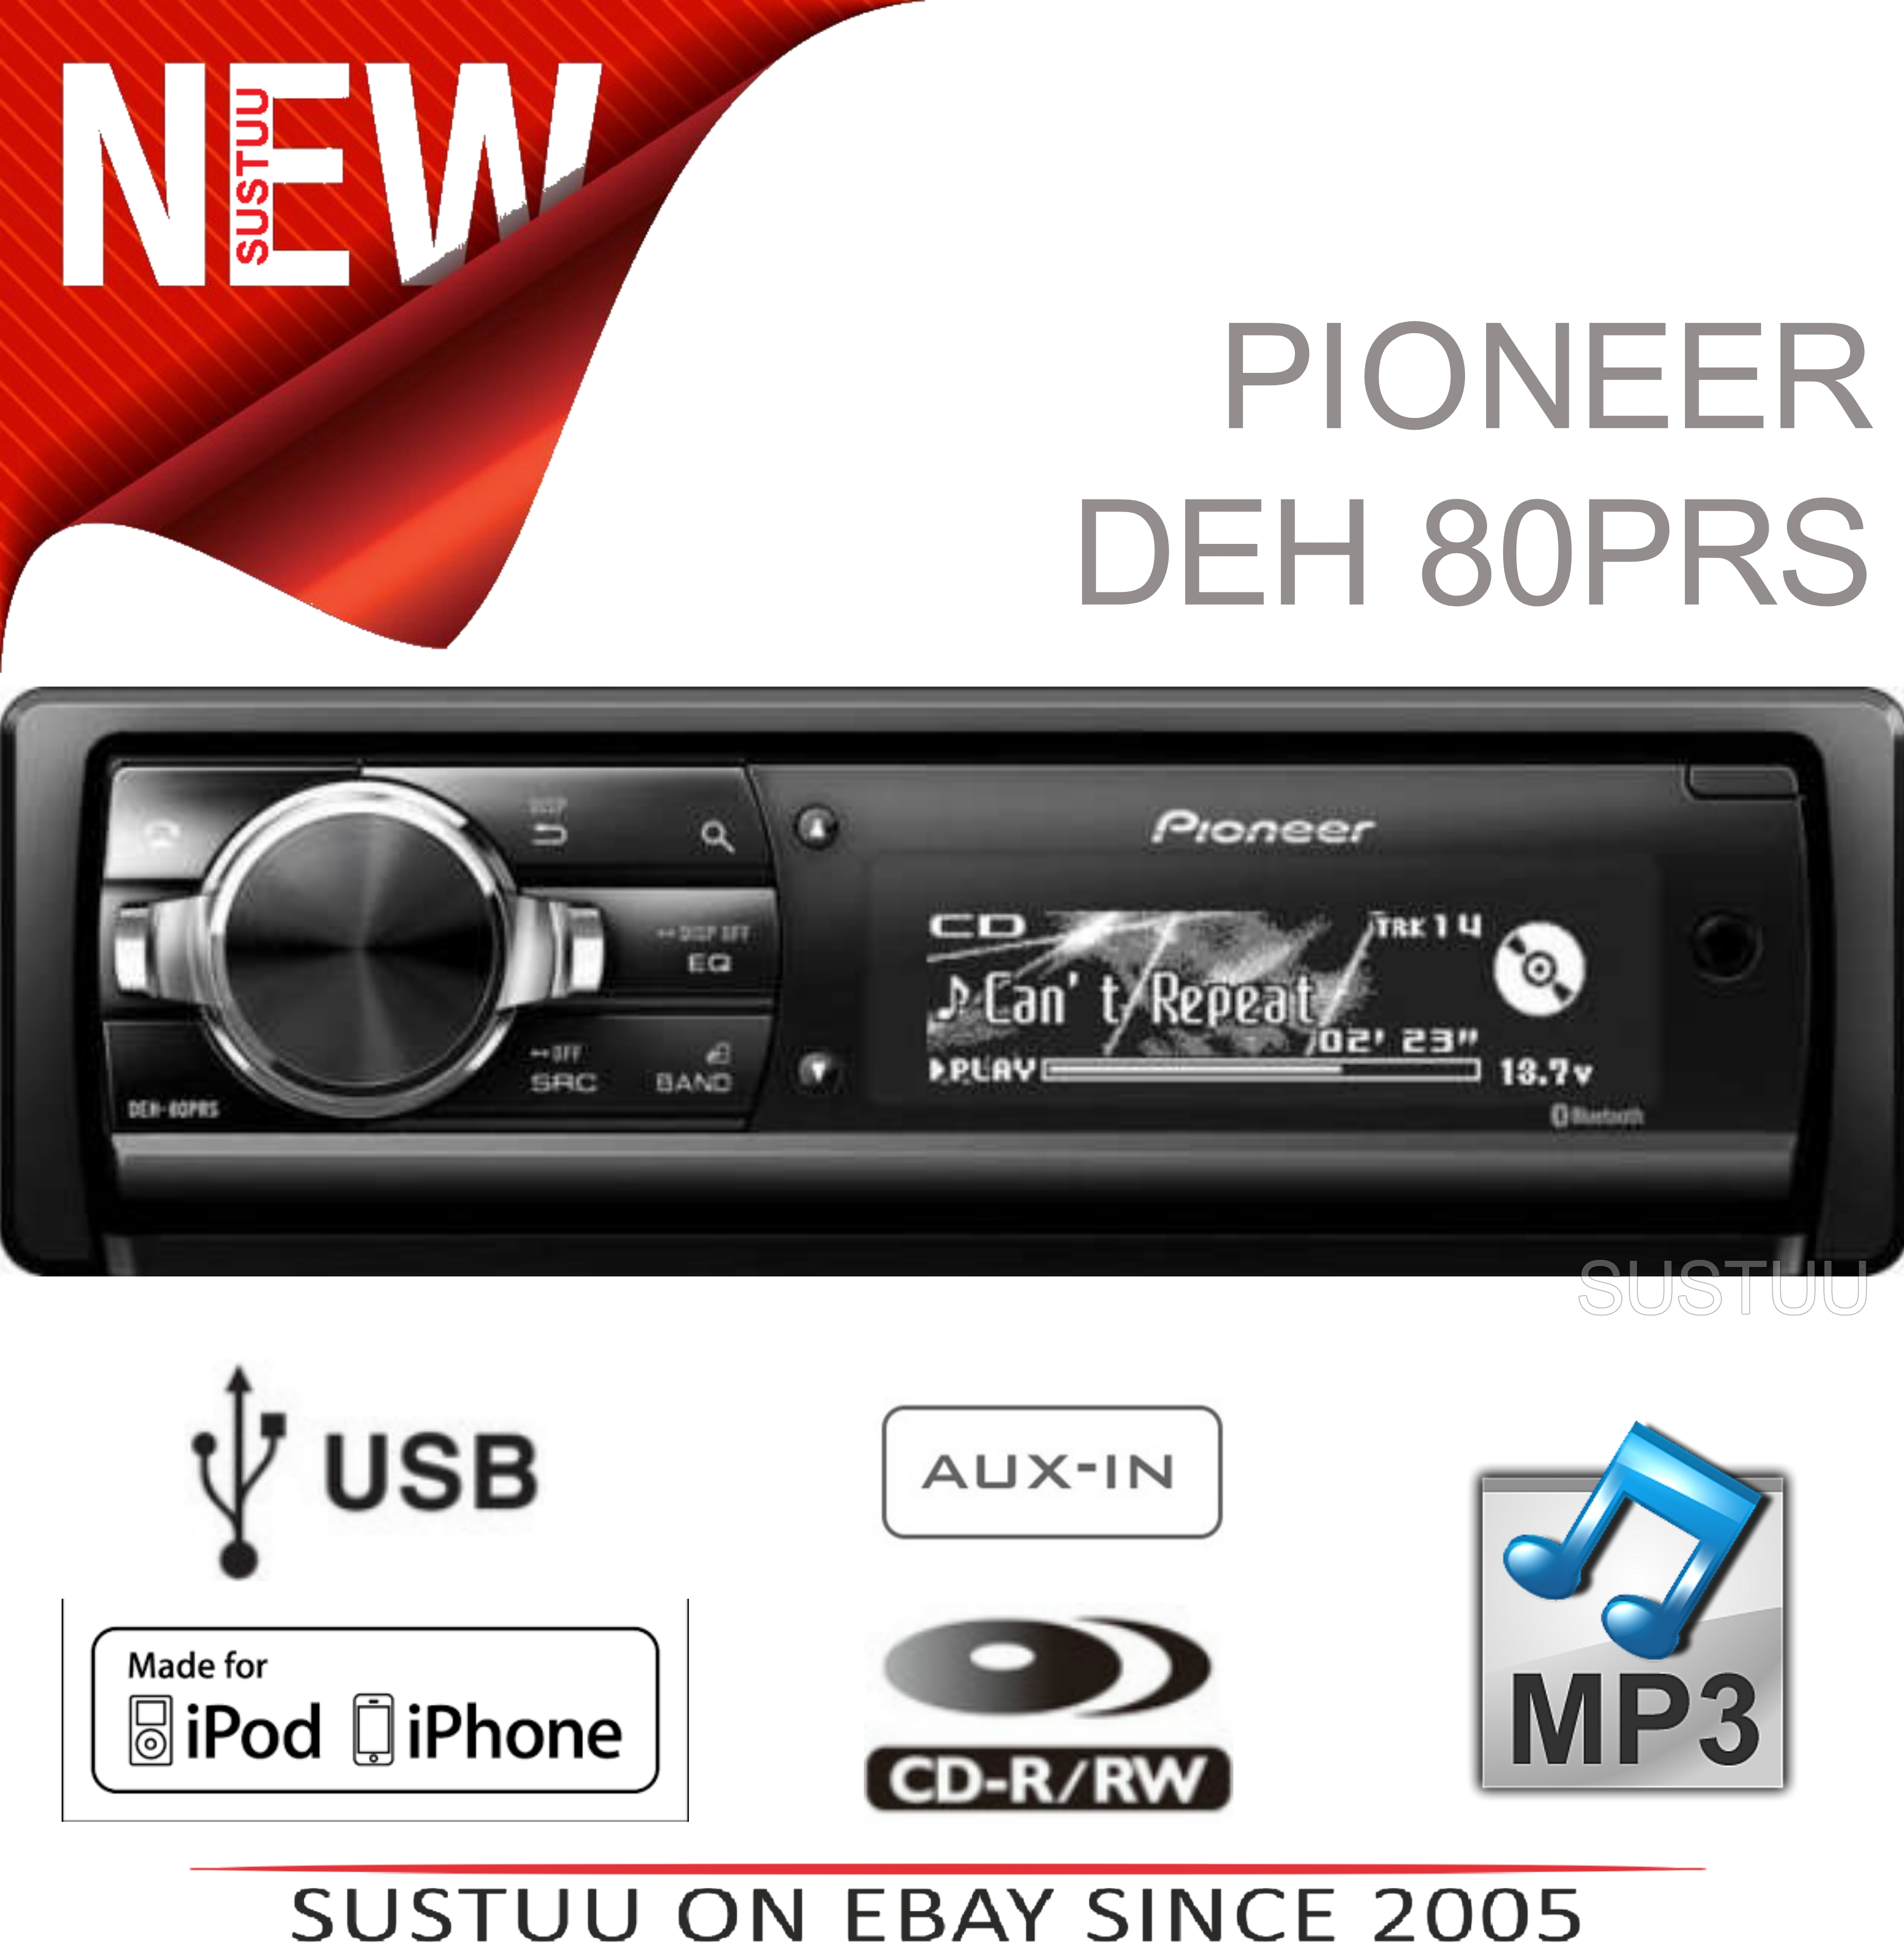 Pioneer DEH-80PRS Car Stereo|CD/MP3/Aux/Bluetooth/USB|iPod/iPhone Control|4x50W